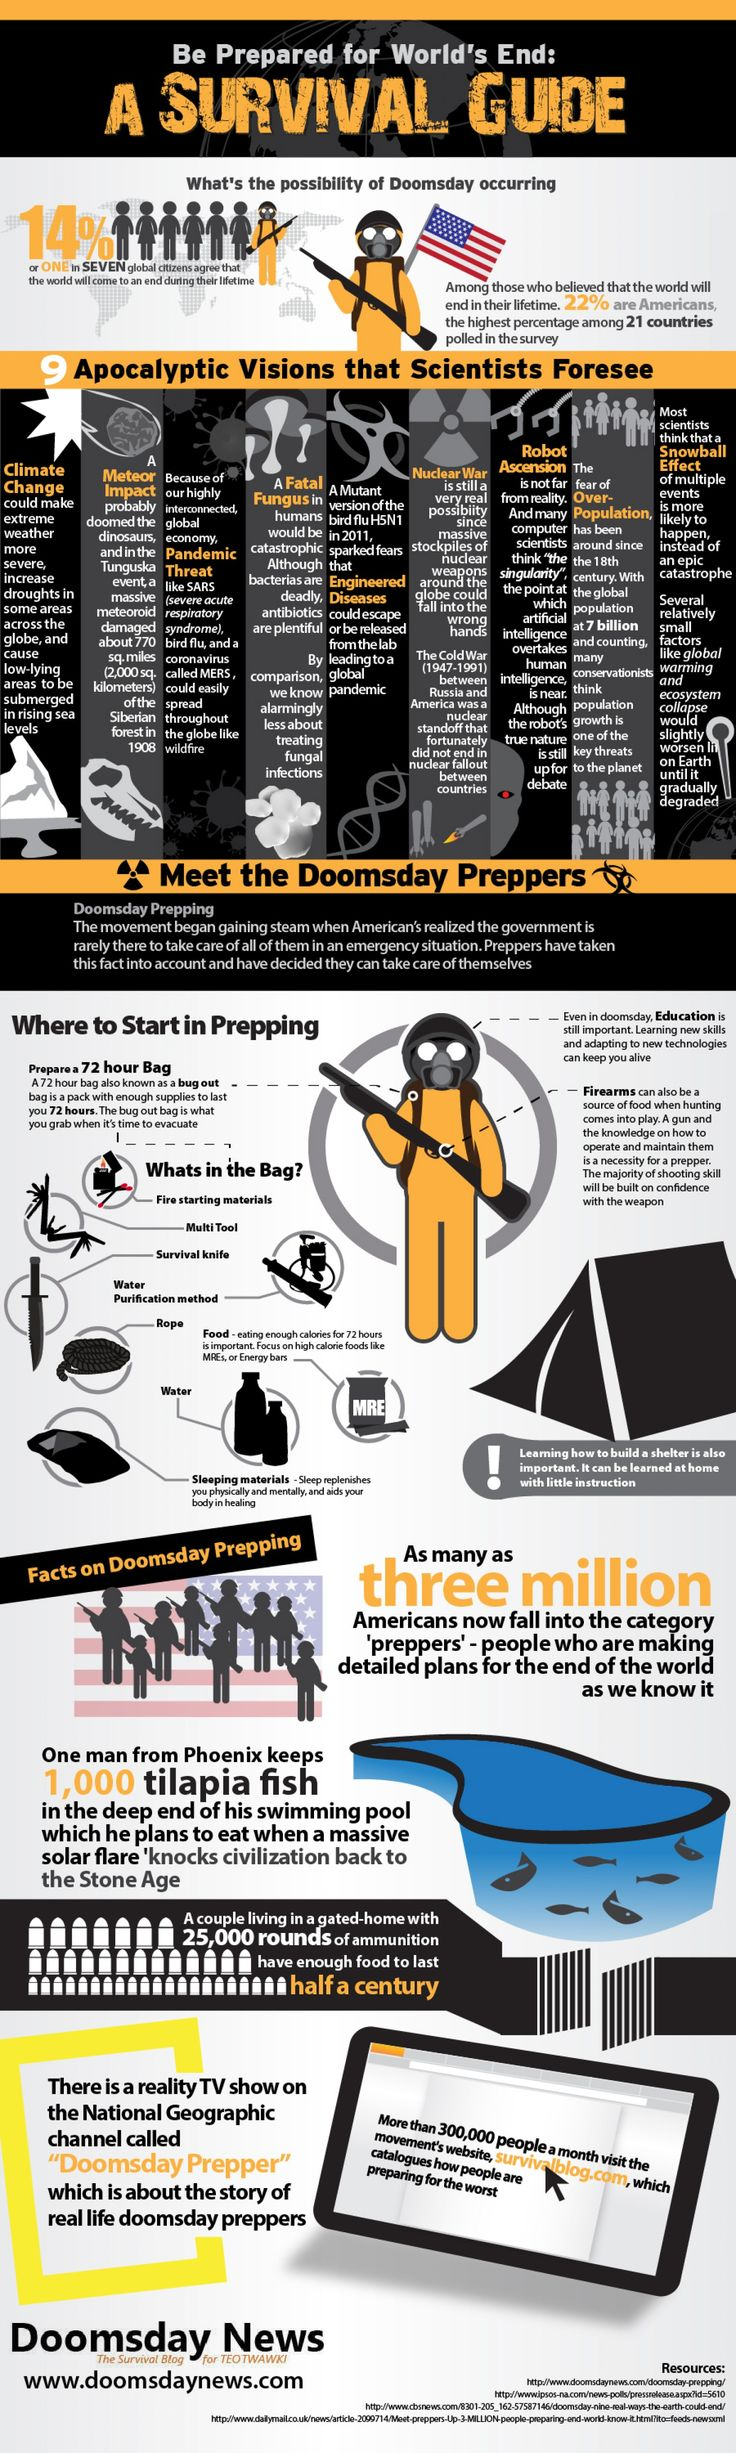 doomsday prepping guide